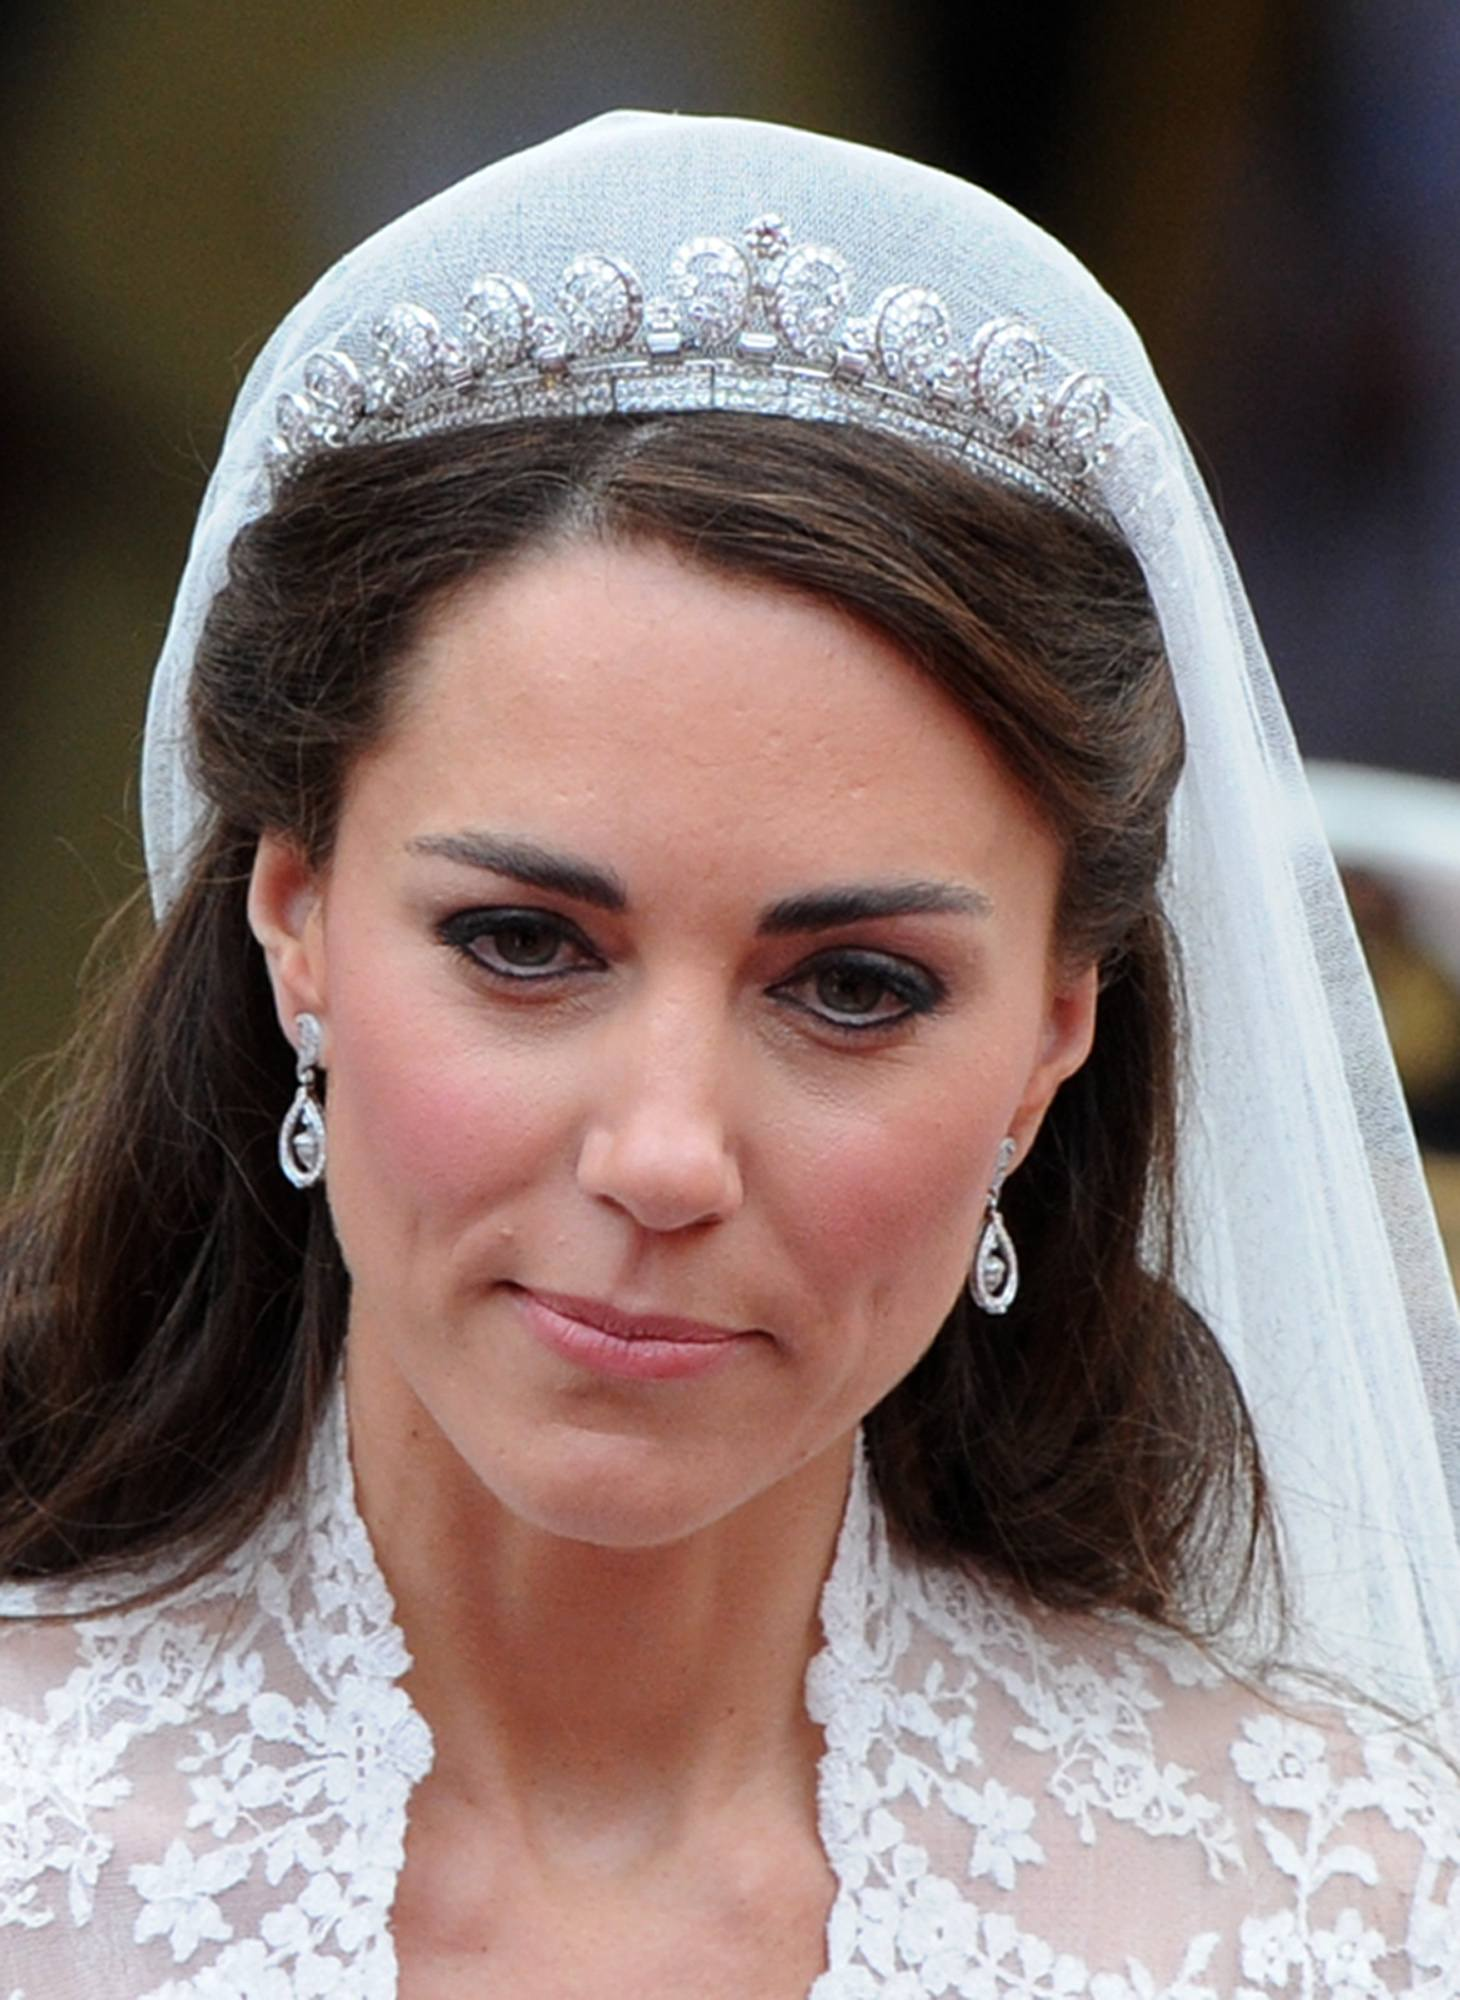 The Most Valuable Royal Family Tiaras Including The 1 We